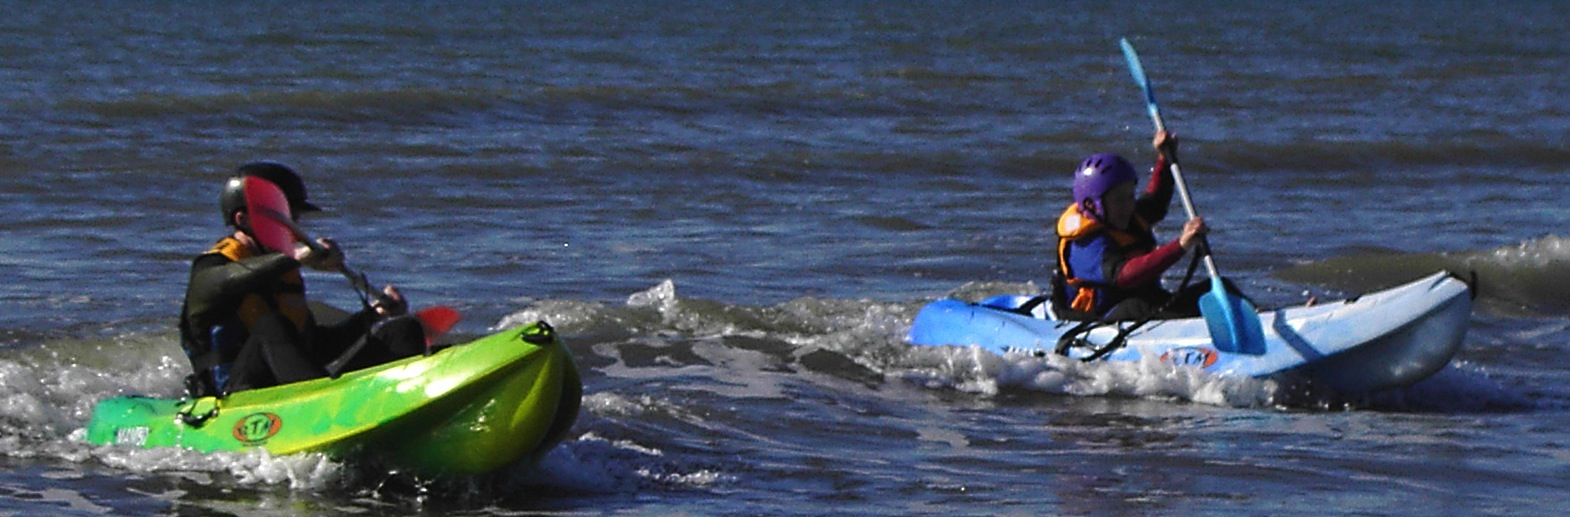 Surf Lessons Paddle Board Lessons And Kayak Hire In Mid